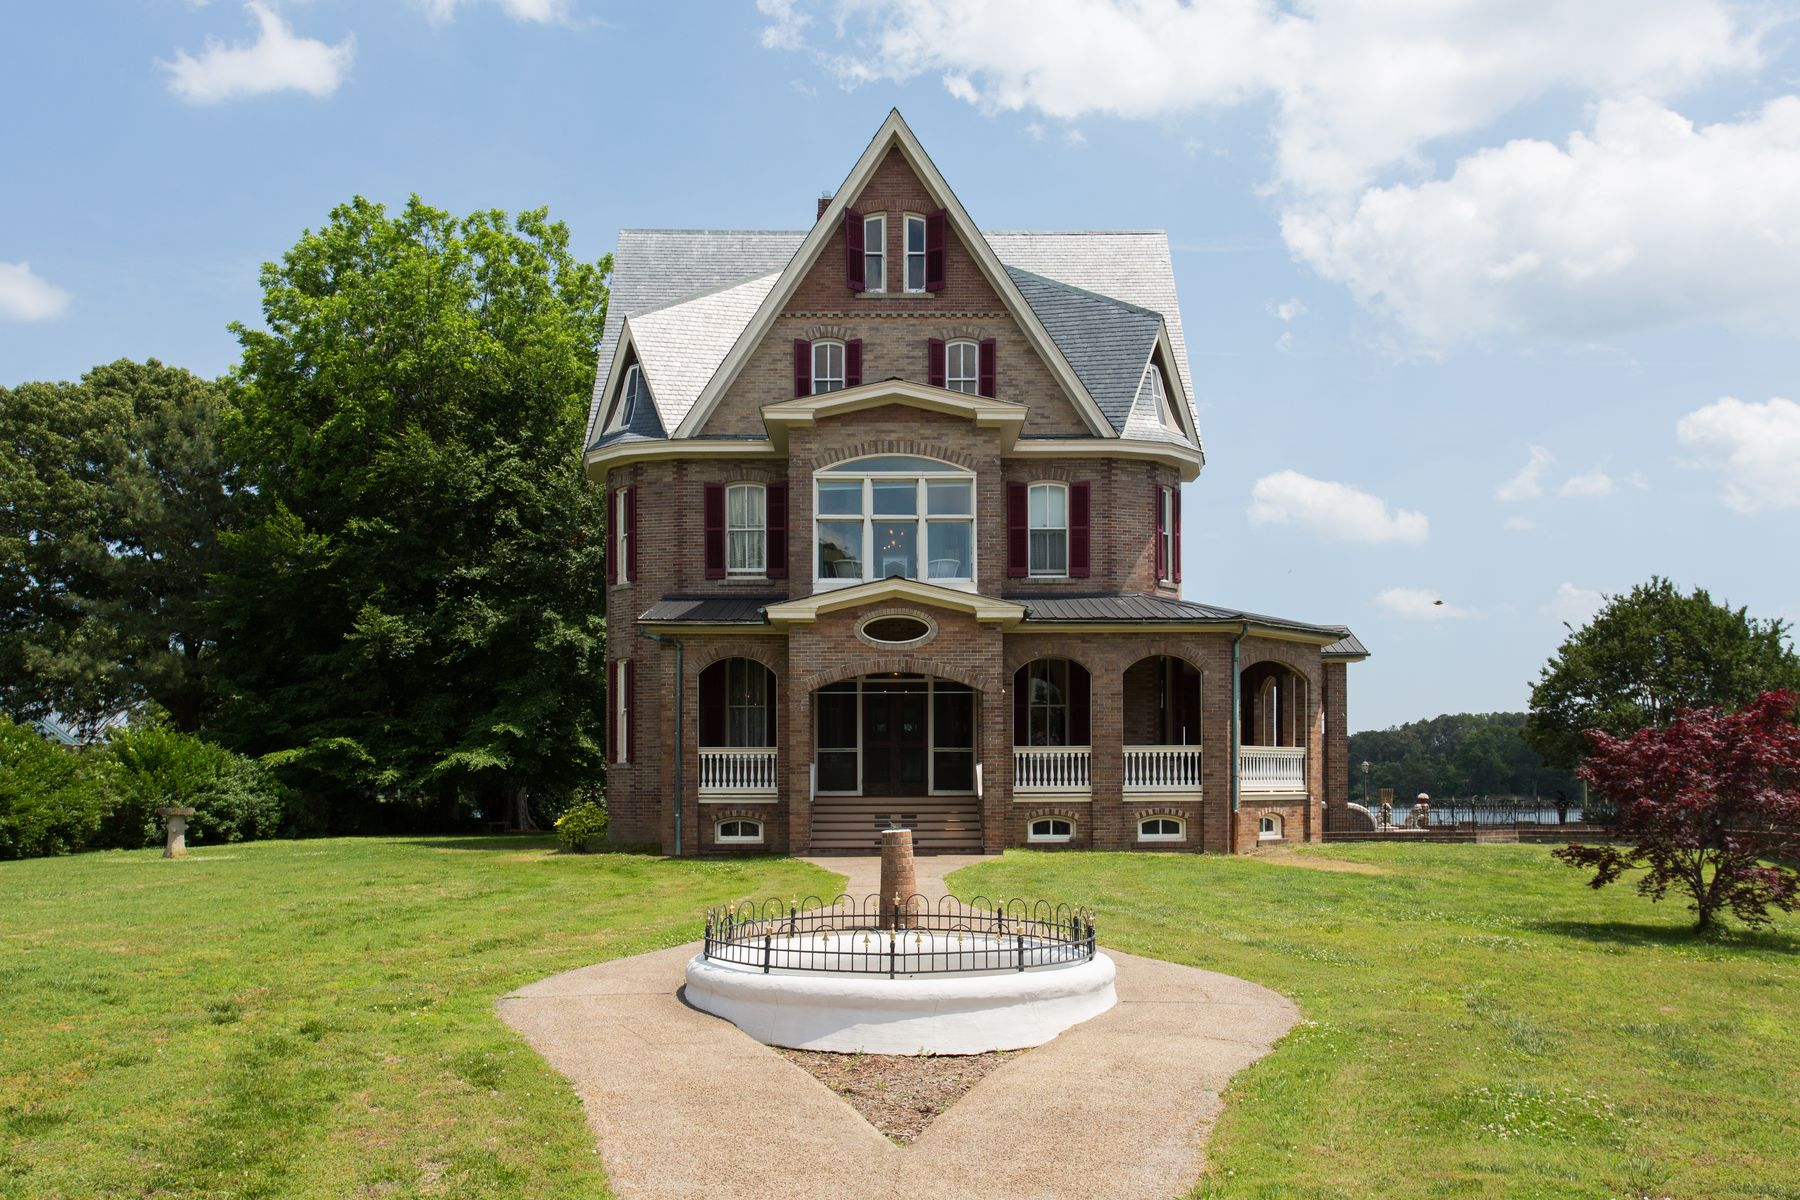 Single Family Homes for Sale at The Gables 859 Main Street, Reedville, Virginia 22539 United States